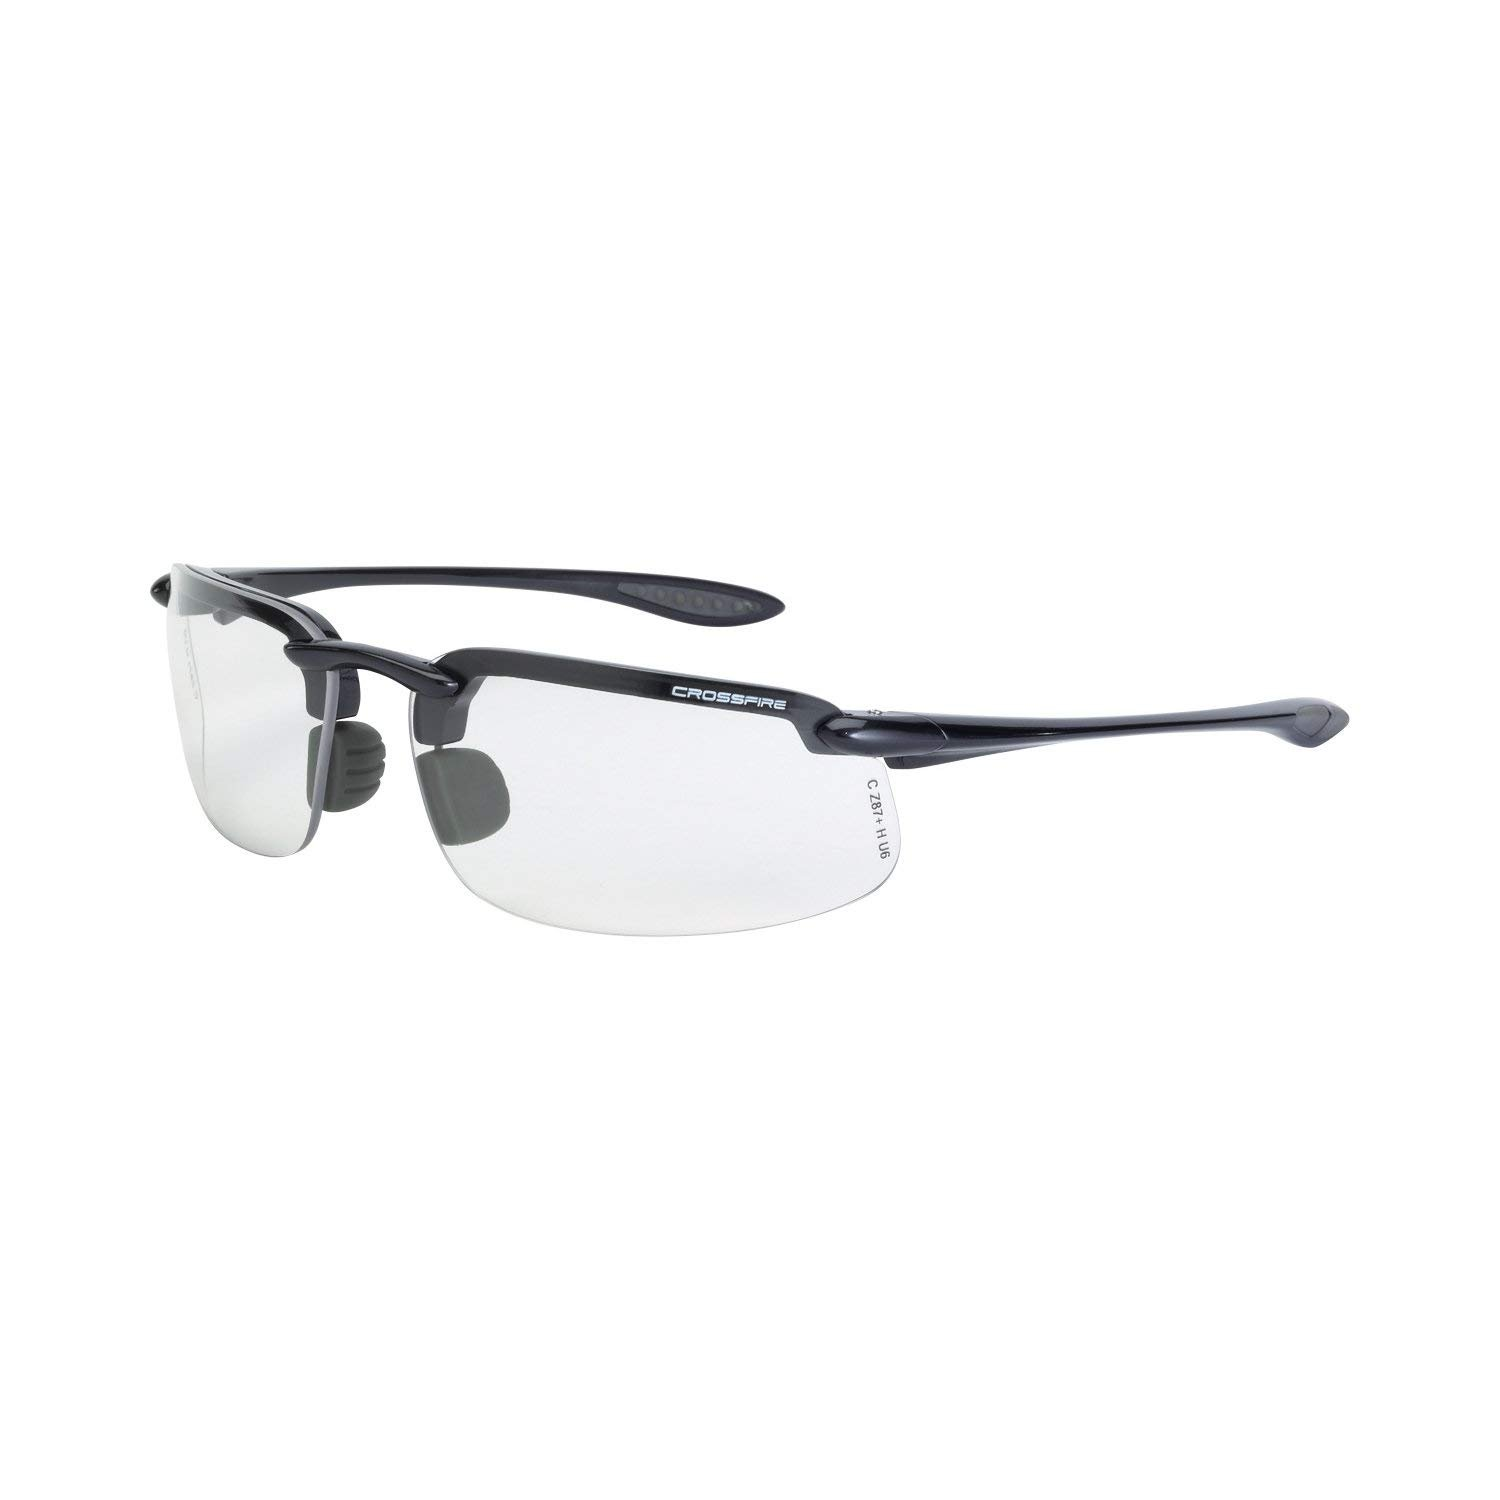 7cc349bf2b Crossfire Eyewear 2164 ES4 Safety Glasses Clear Lens - Hunting Safety  Glasses - Amazon.com